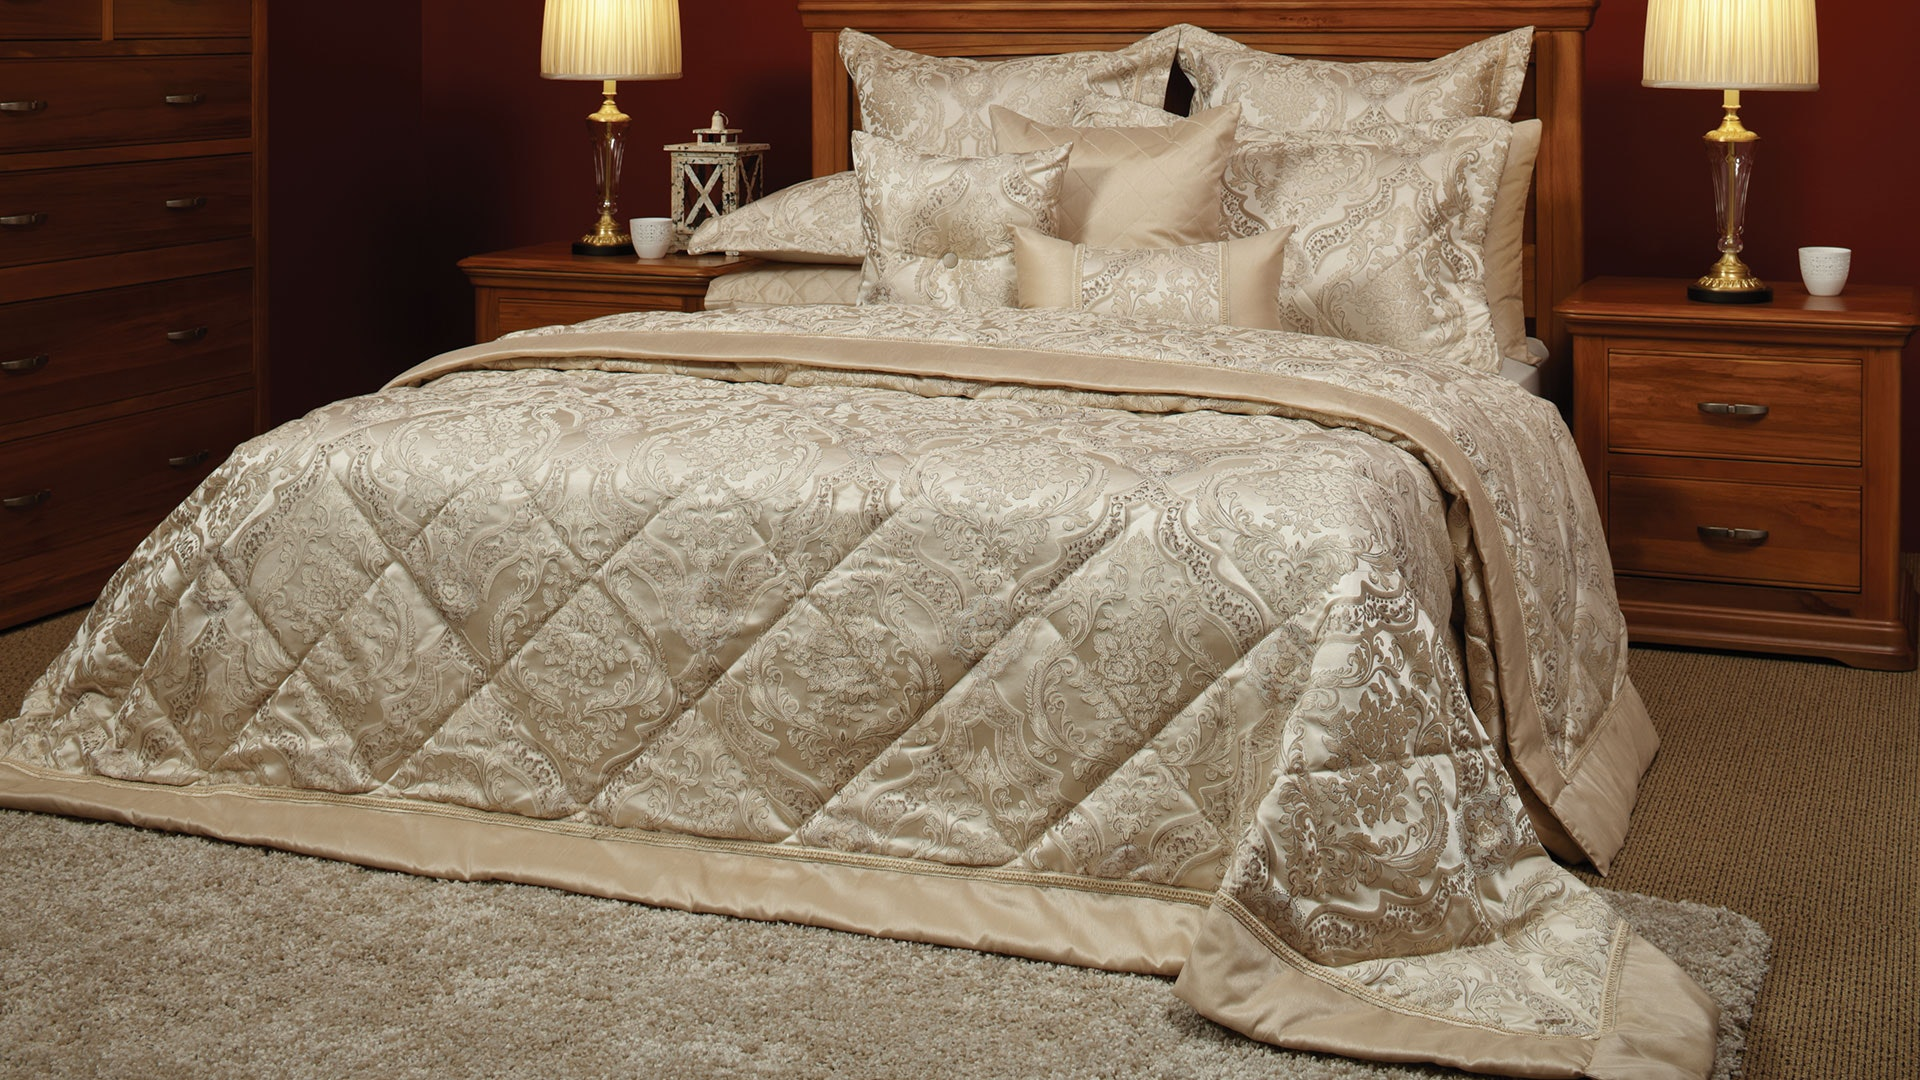 Allerton Bedspread by Central Thread Grandeur